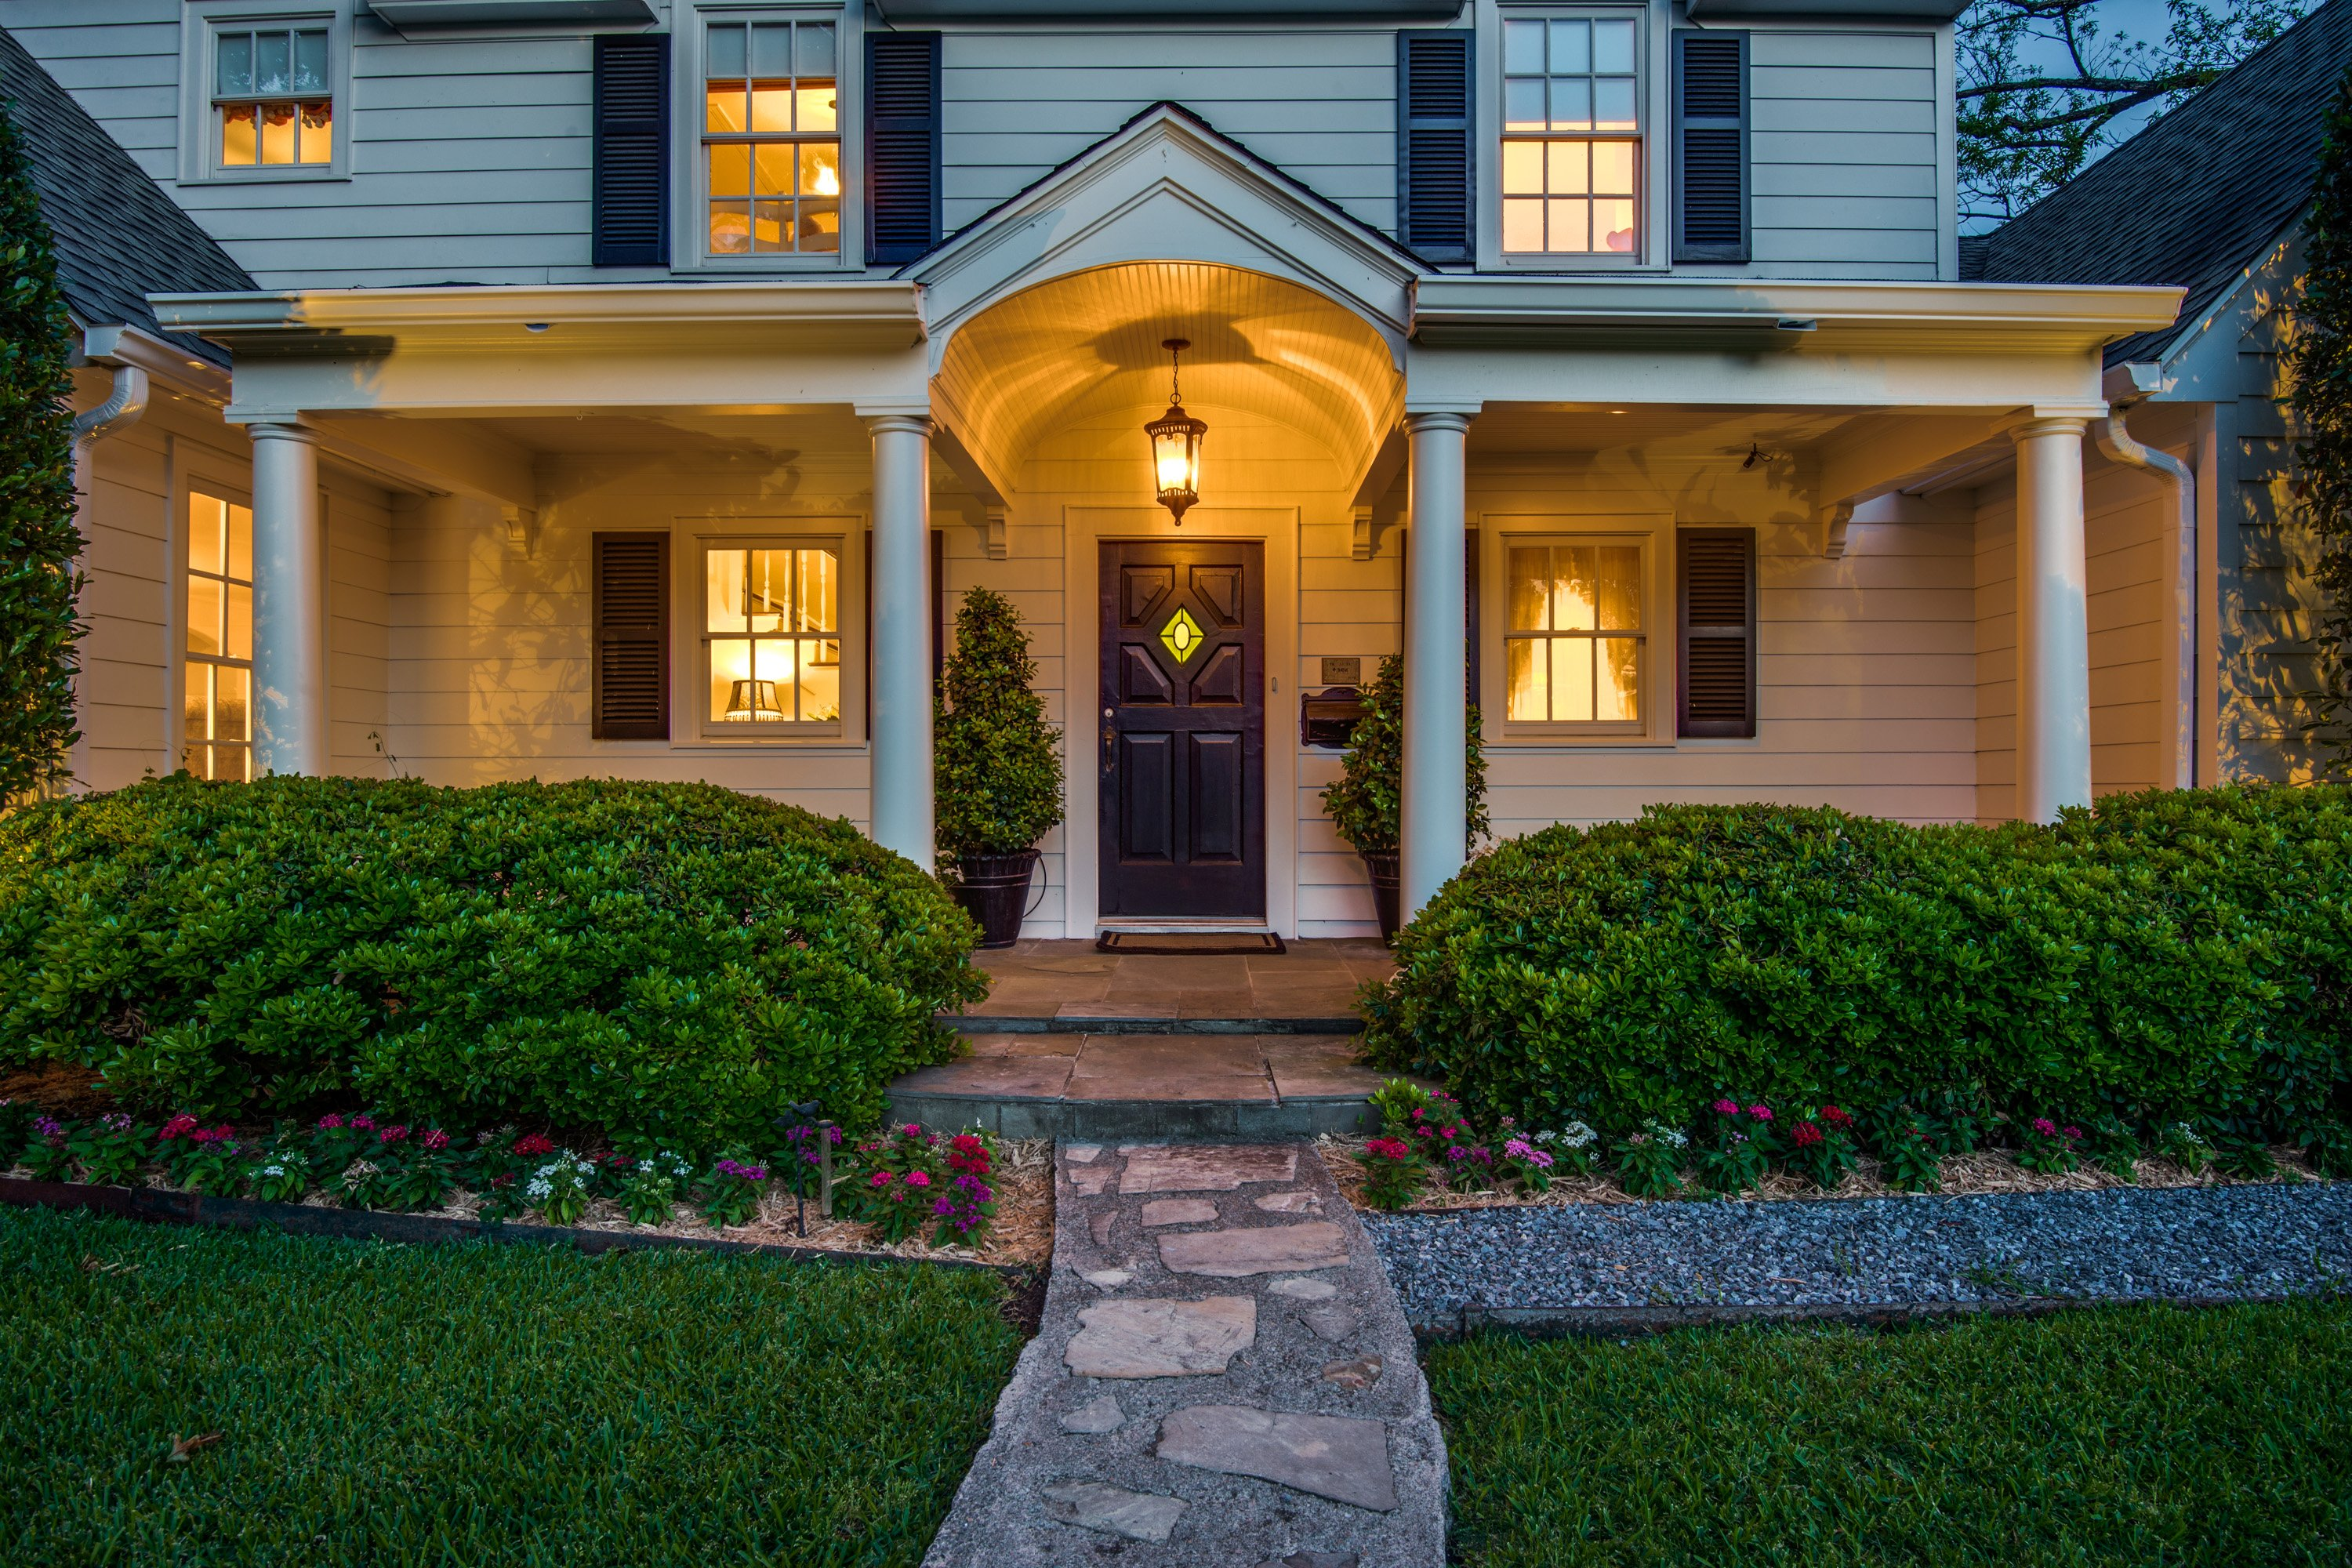 10 Most Beautiful Houses in Dallas- 8200 Forest Hills Blvd.